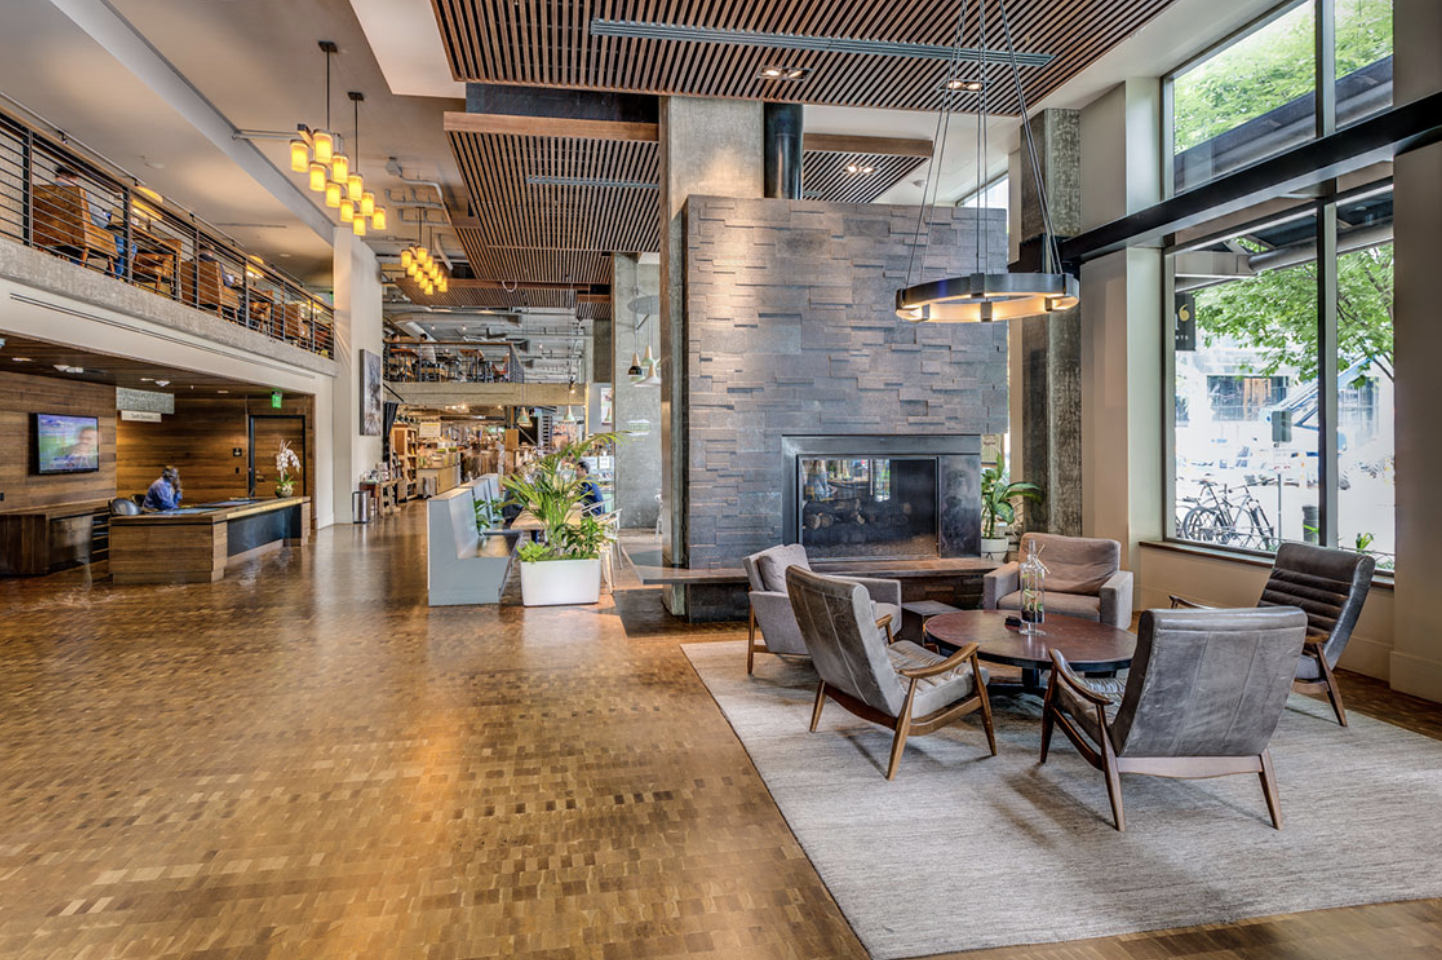 The light-filled lobby at Via6 Downtown, with modern furniture and retail spaces in the background.